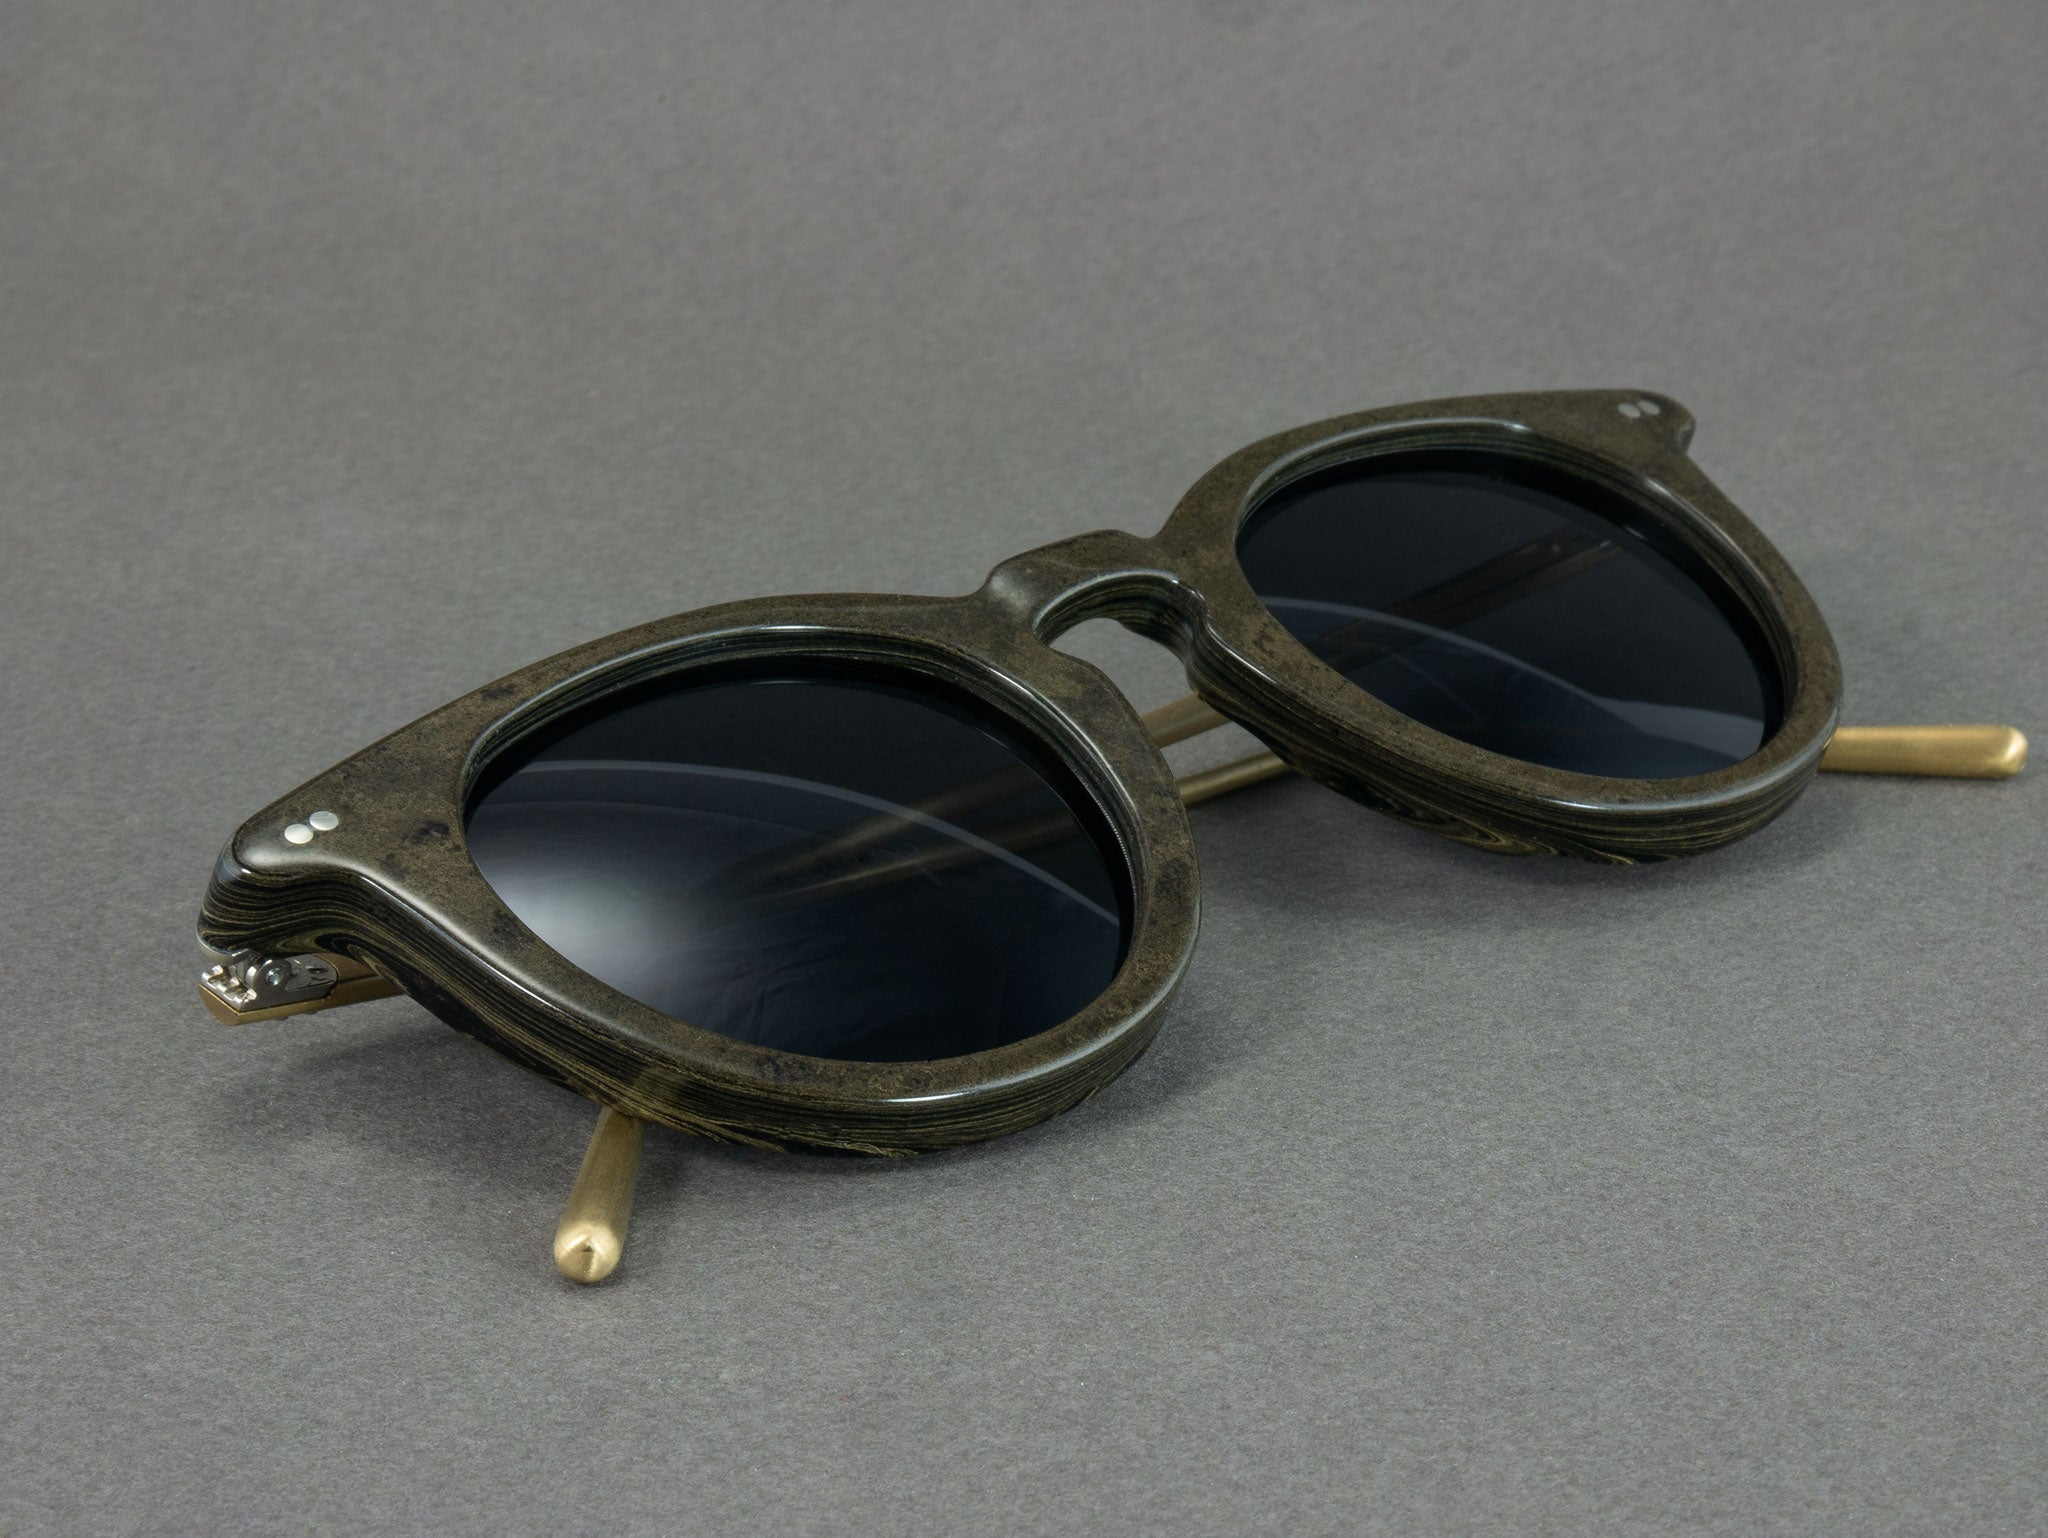 Close up View of Ebonite Sunglasses